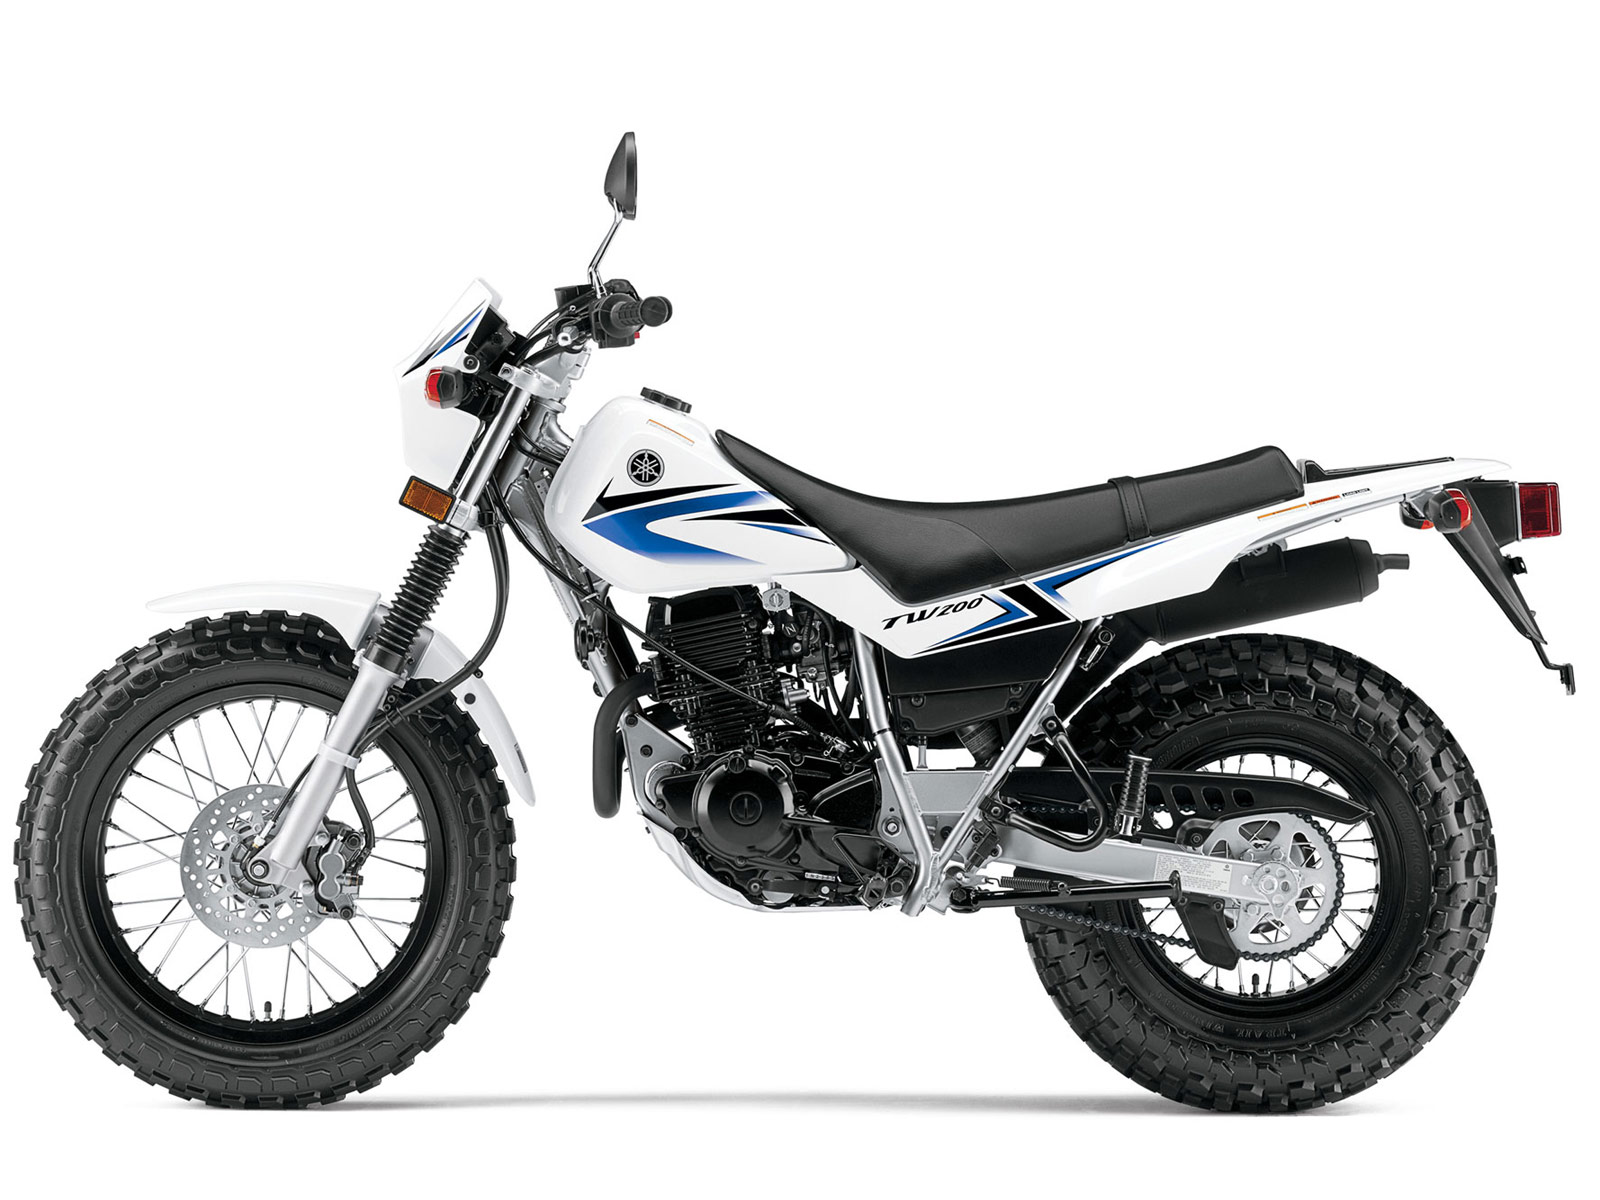 2014 Yamaha TW200 | YAMAHA Pictures, review, specifications